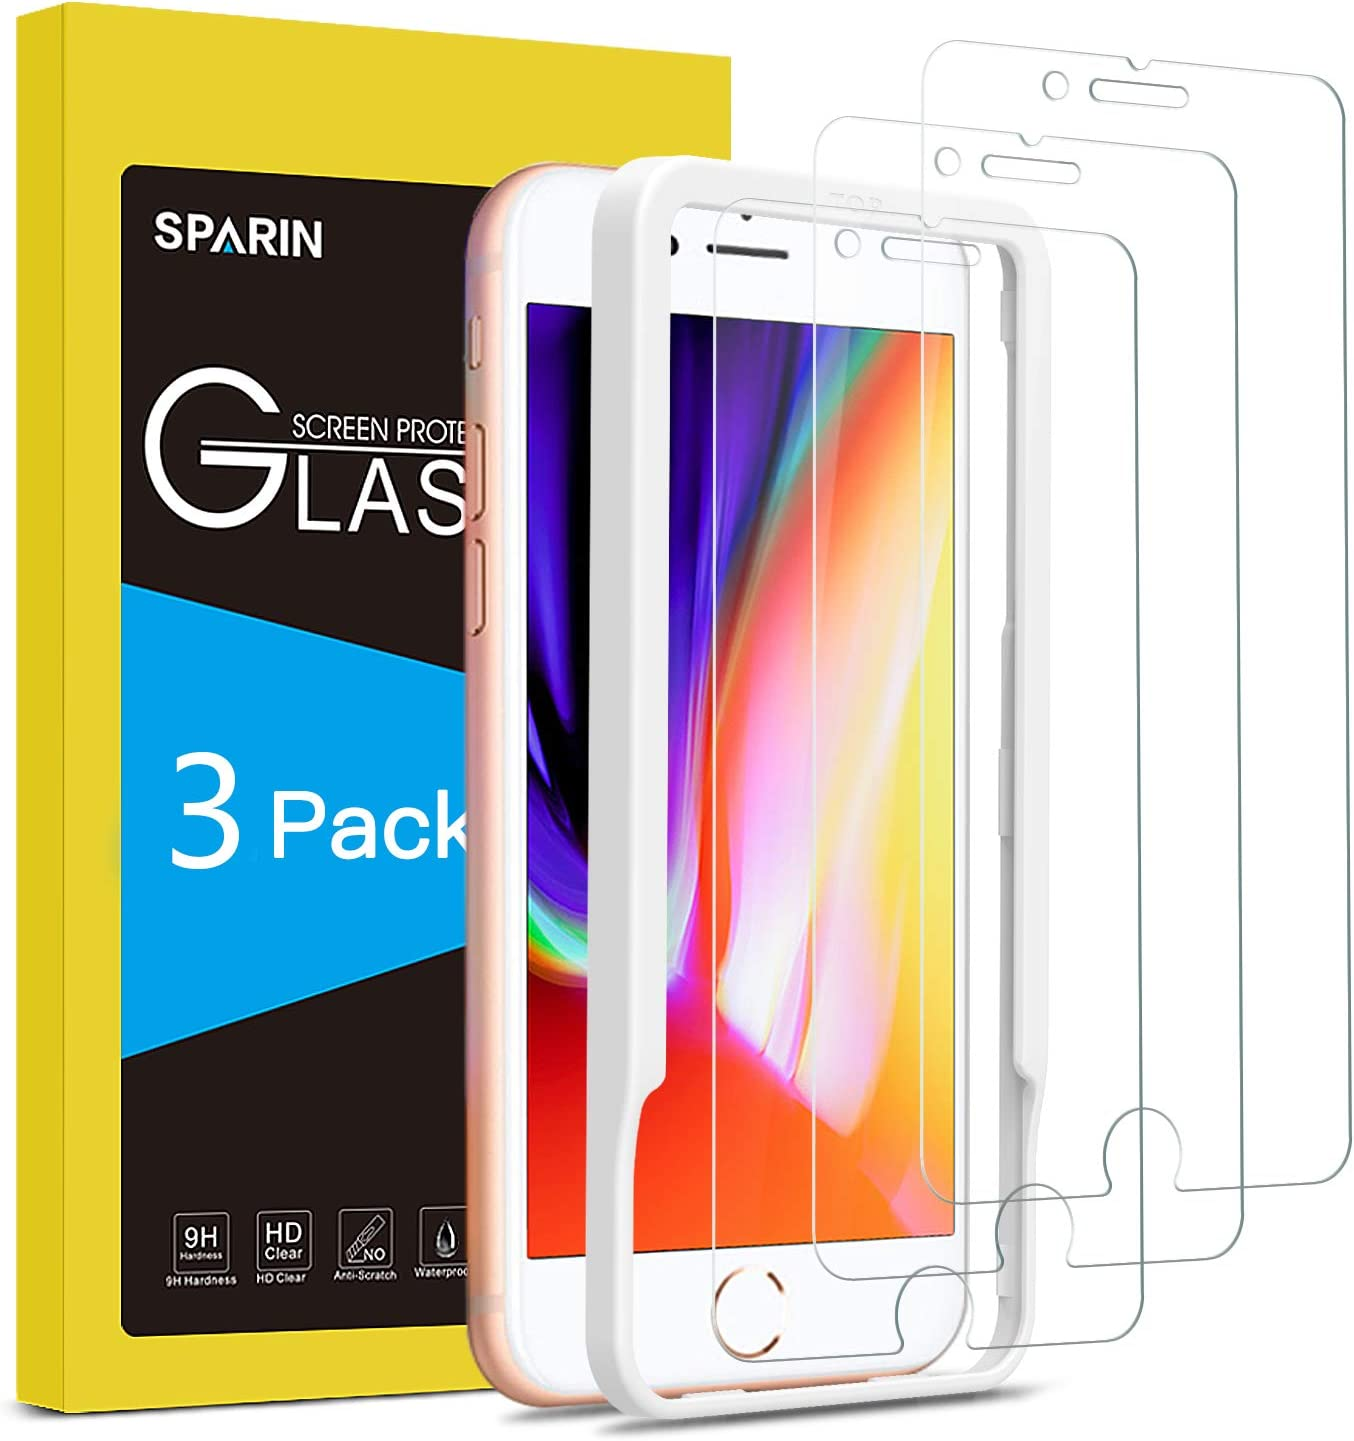 SPARIN [3-Pack Protector Pantalla iPhone 7 Plus/iPhone 8 Plus, Cristal Templado iPhone 7 Plus/iPhone 8 Plus, Vidrio Templado con [Sin Cobertura Toda Pantalla] [9H Dureza] [Alta Definicion]